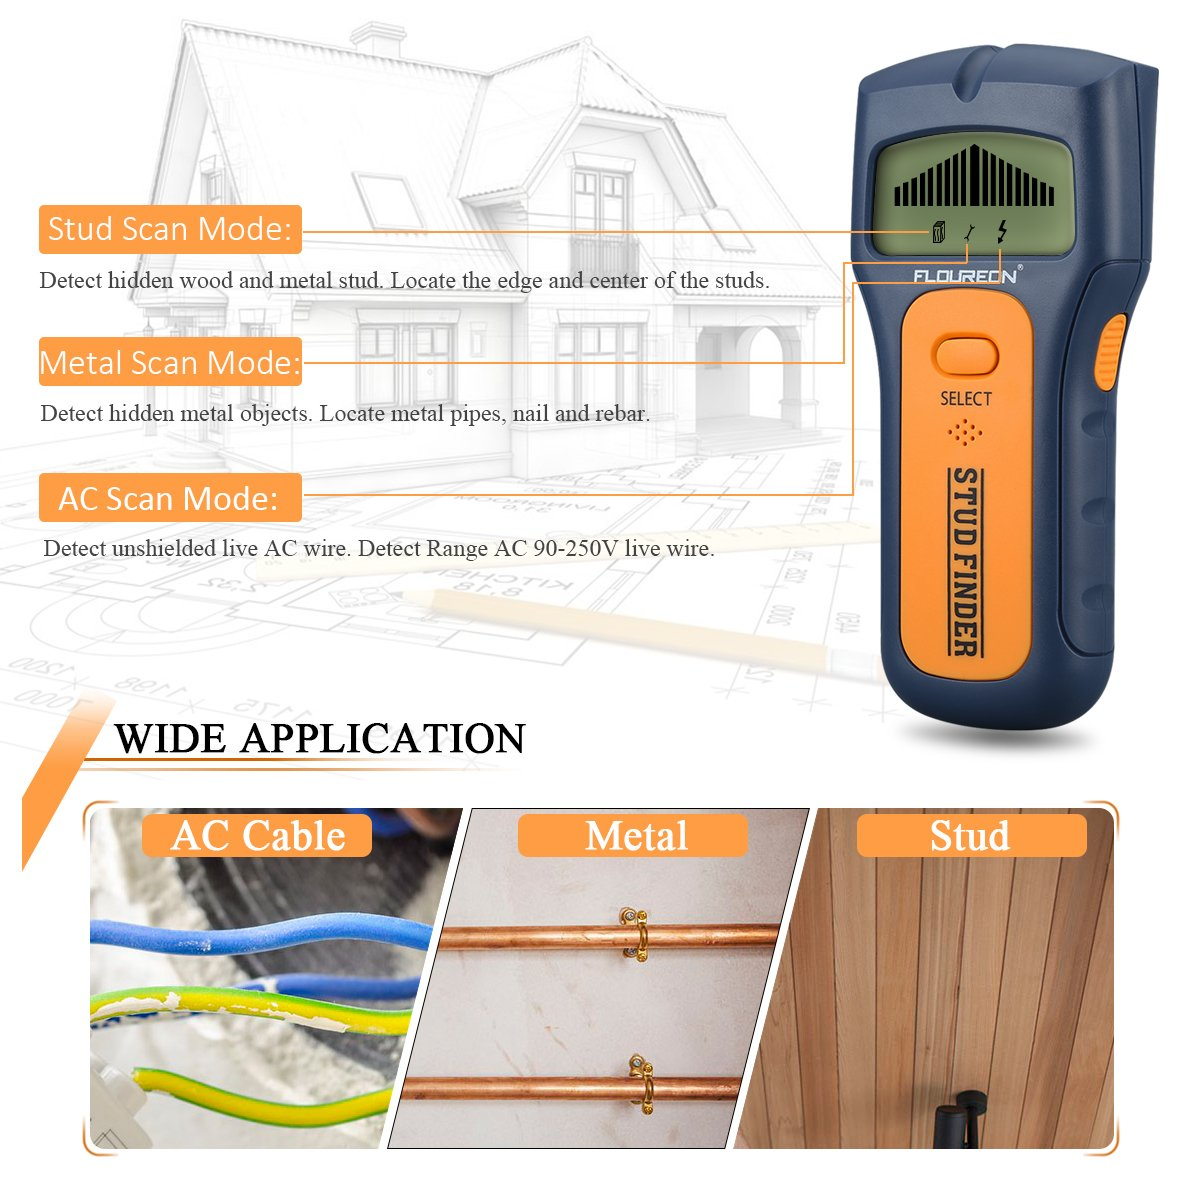 FLY5D 3 In 1 Wire Metal Wood Detectors Stud Finder Sensor Wall Scanner AC Voltage Live Wire Cable Finder Detect Behind Wall LCD Display - - Amazon.com